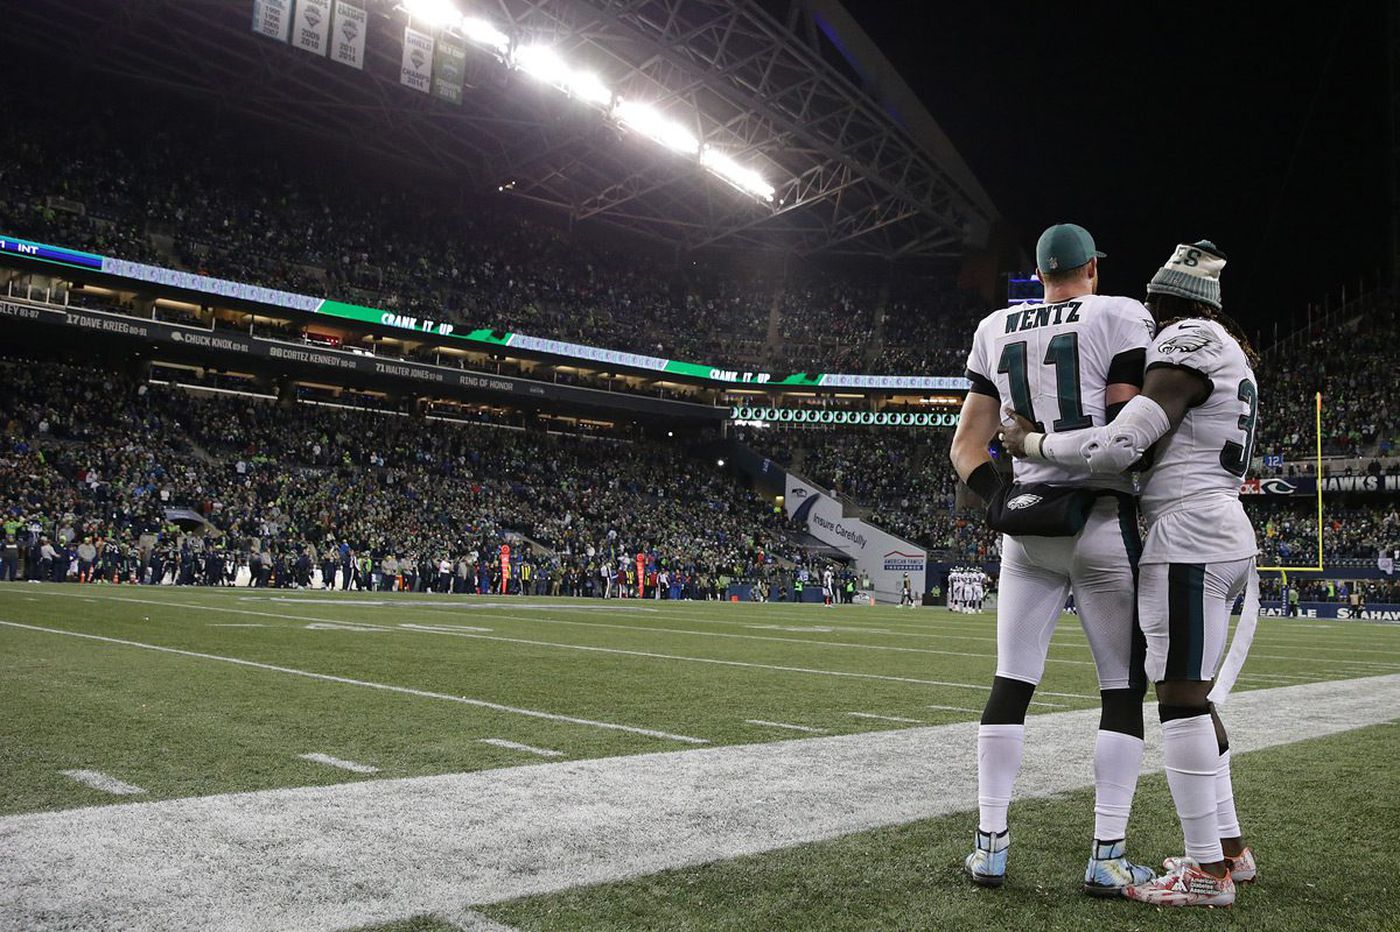 NFL power rankings: Eagles drop, but experts aren't bailing just yet